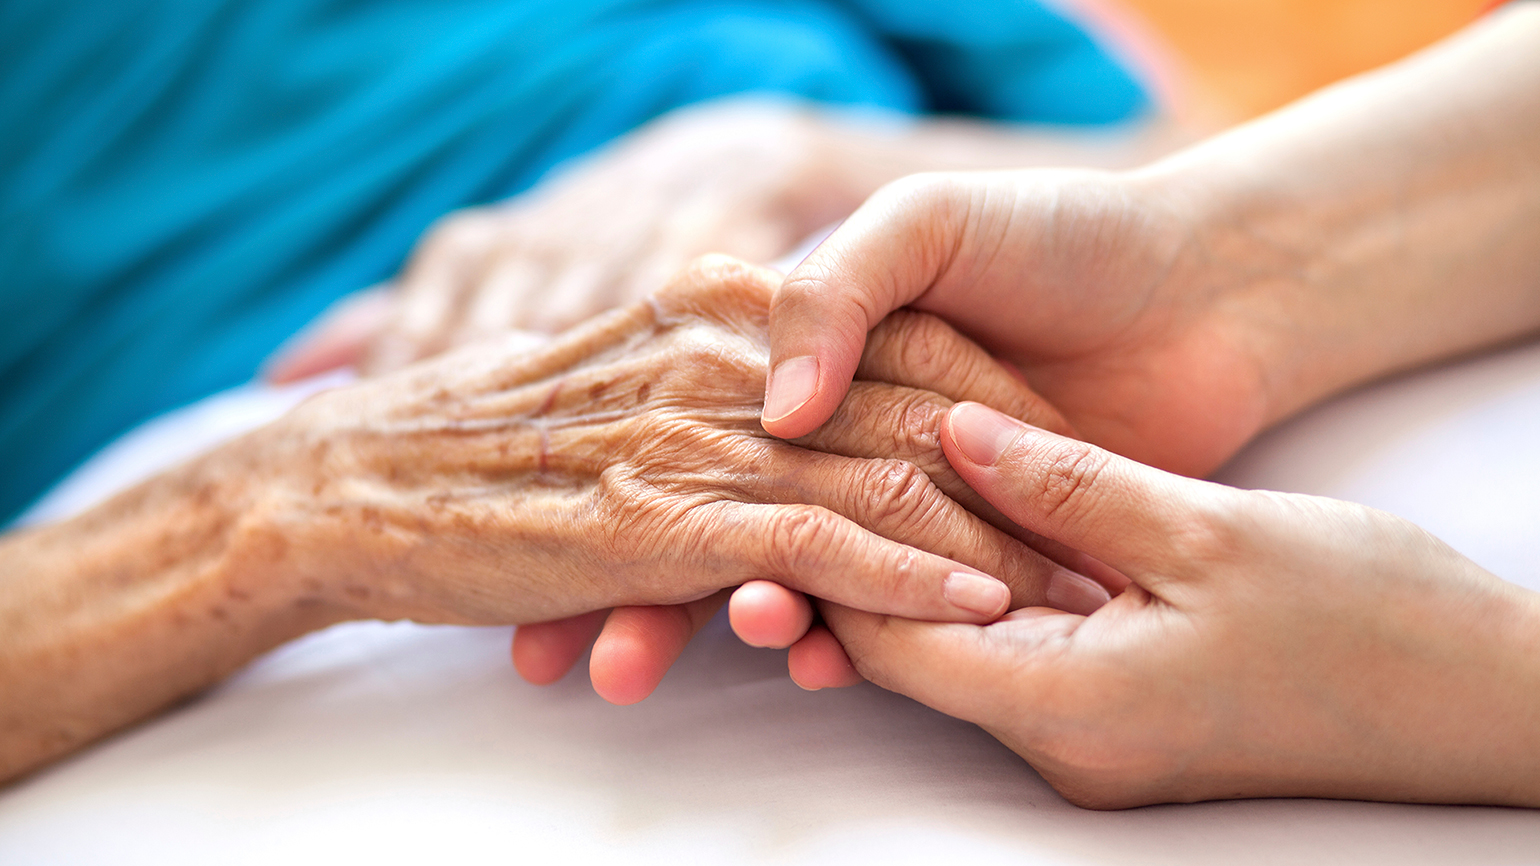 A senior woman's hands are clasped in the hands of a younger caregiver